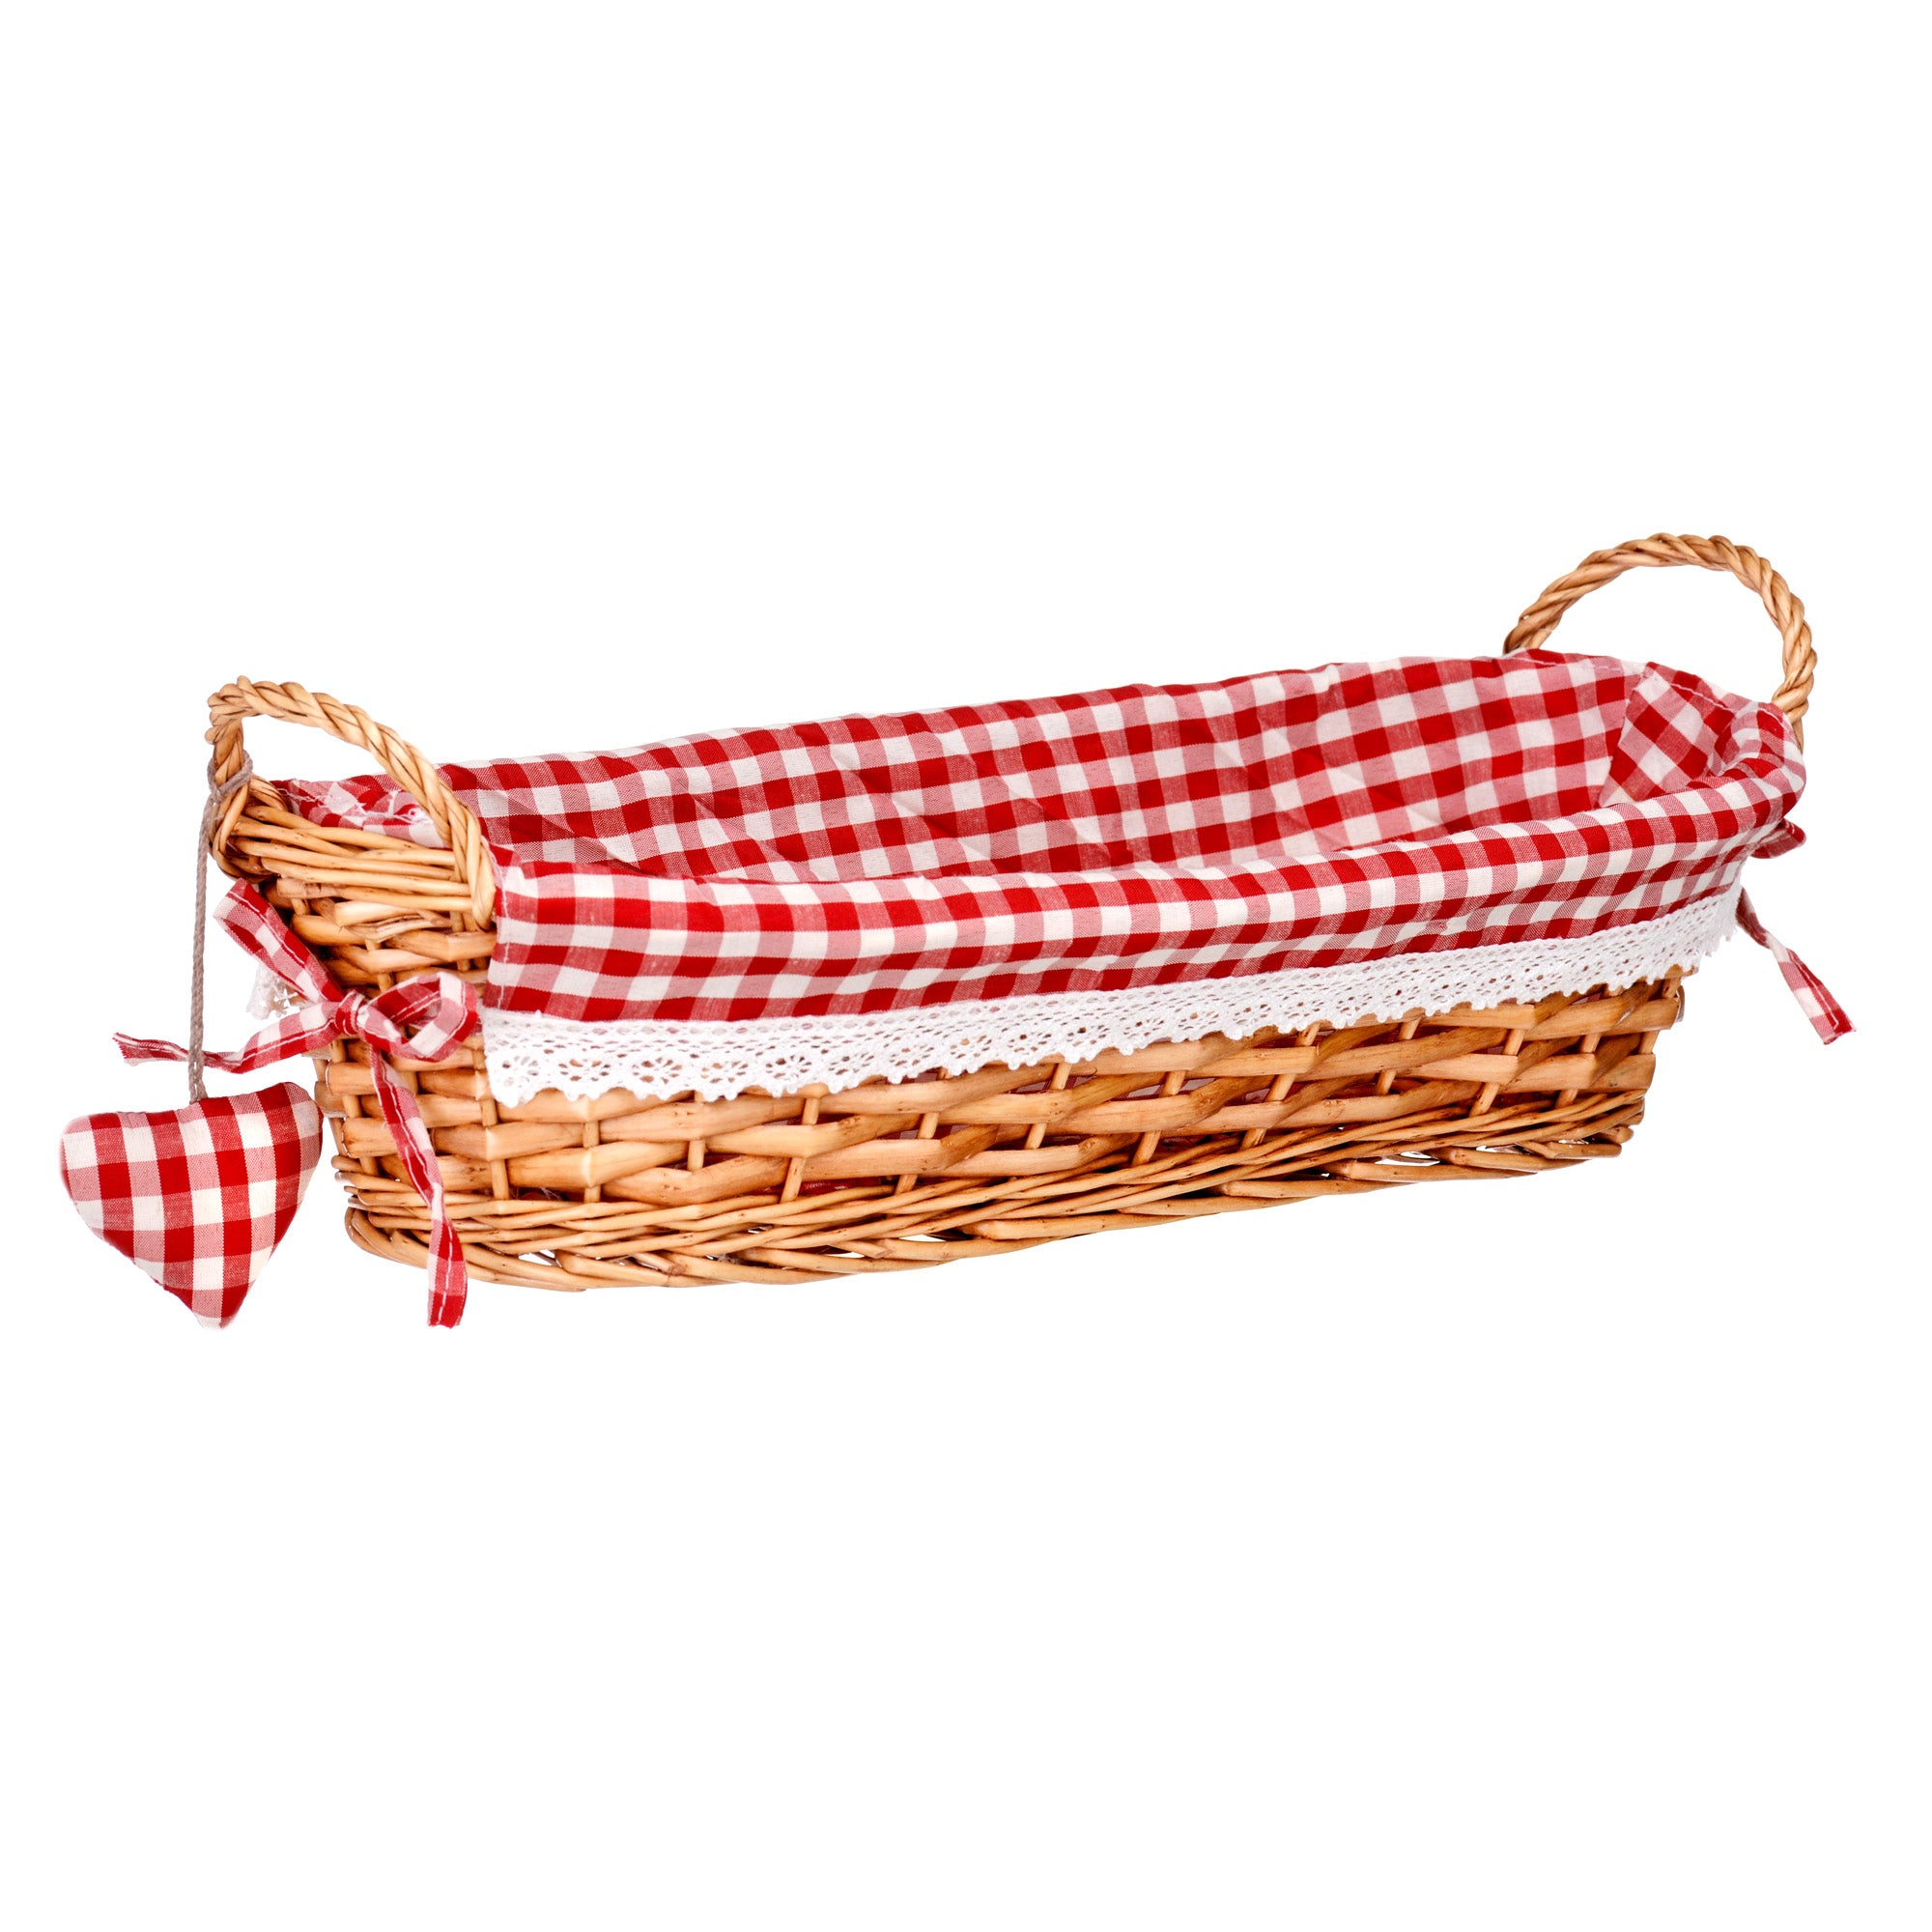 Long Willow Bread Basket with Red Gingham Lining